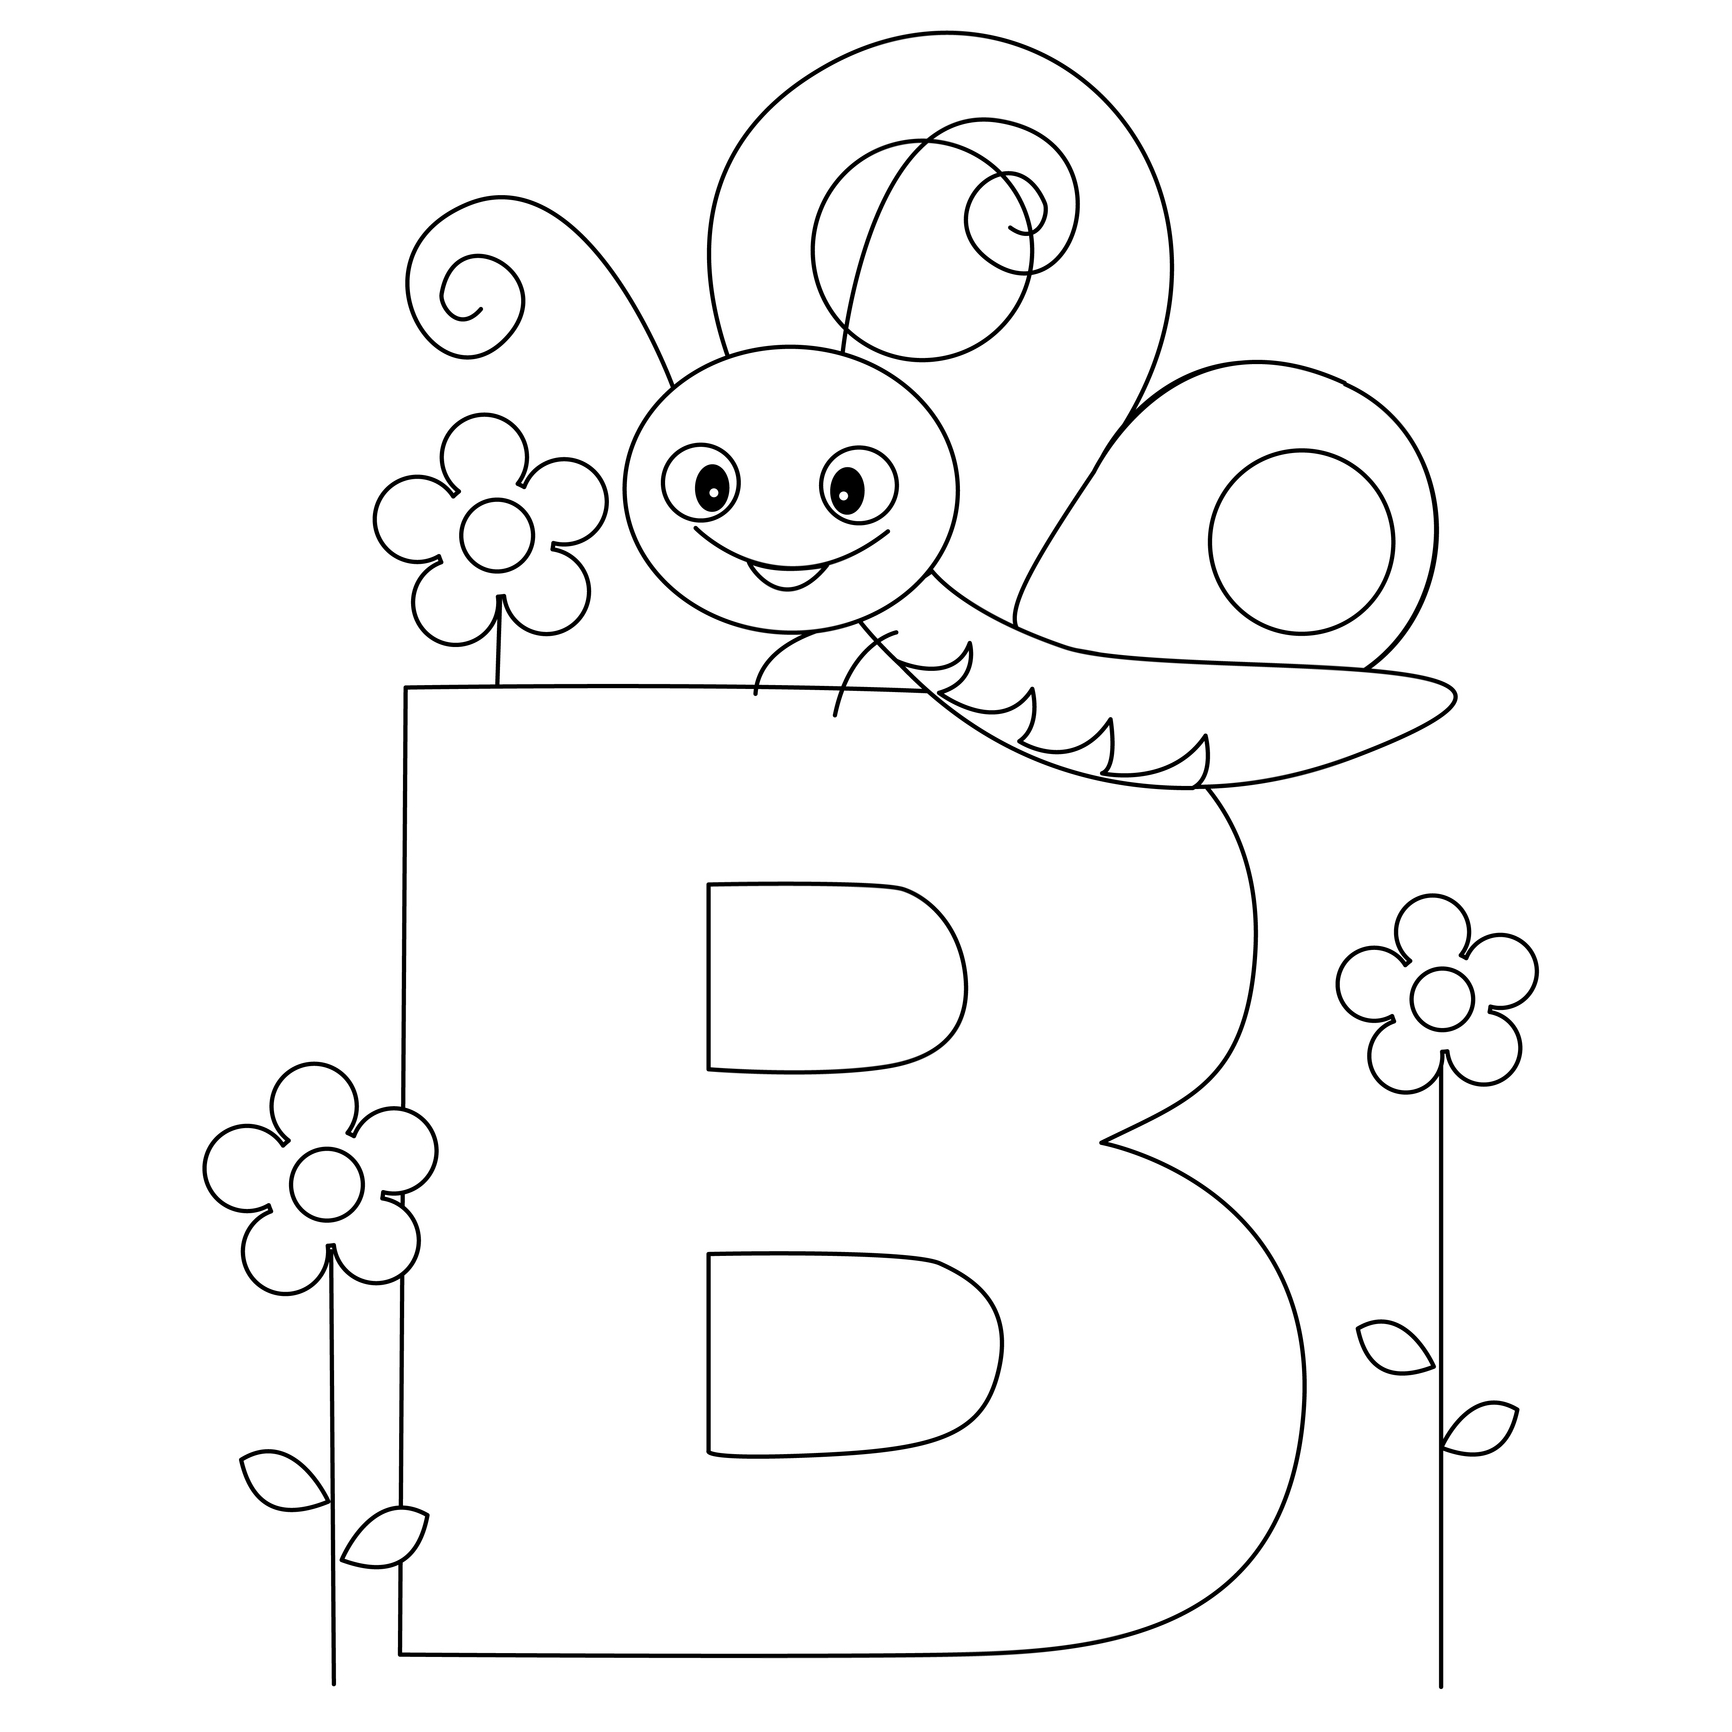 Shorts Coloring Page